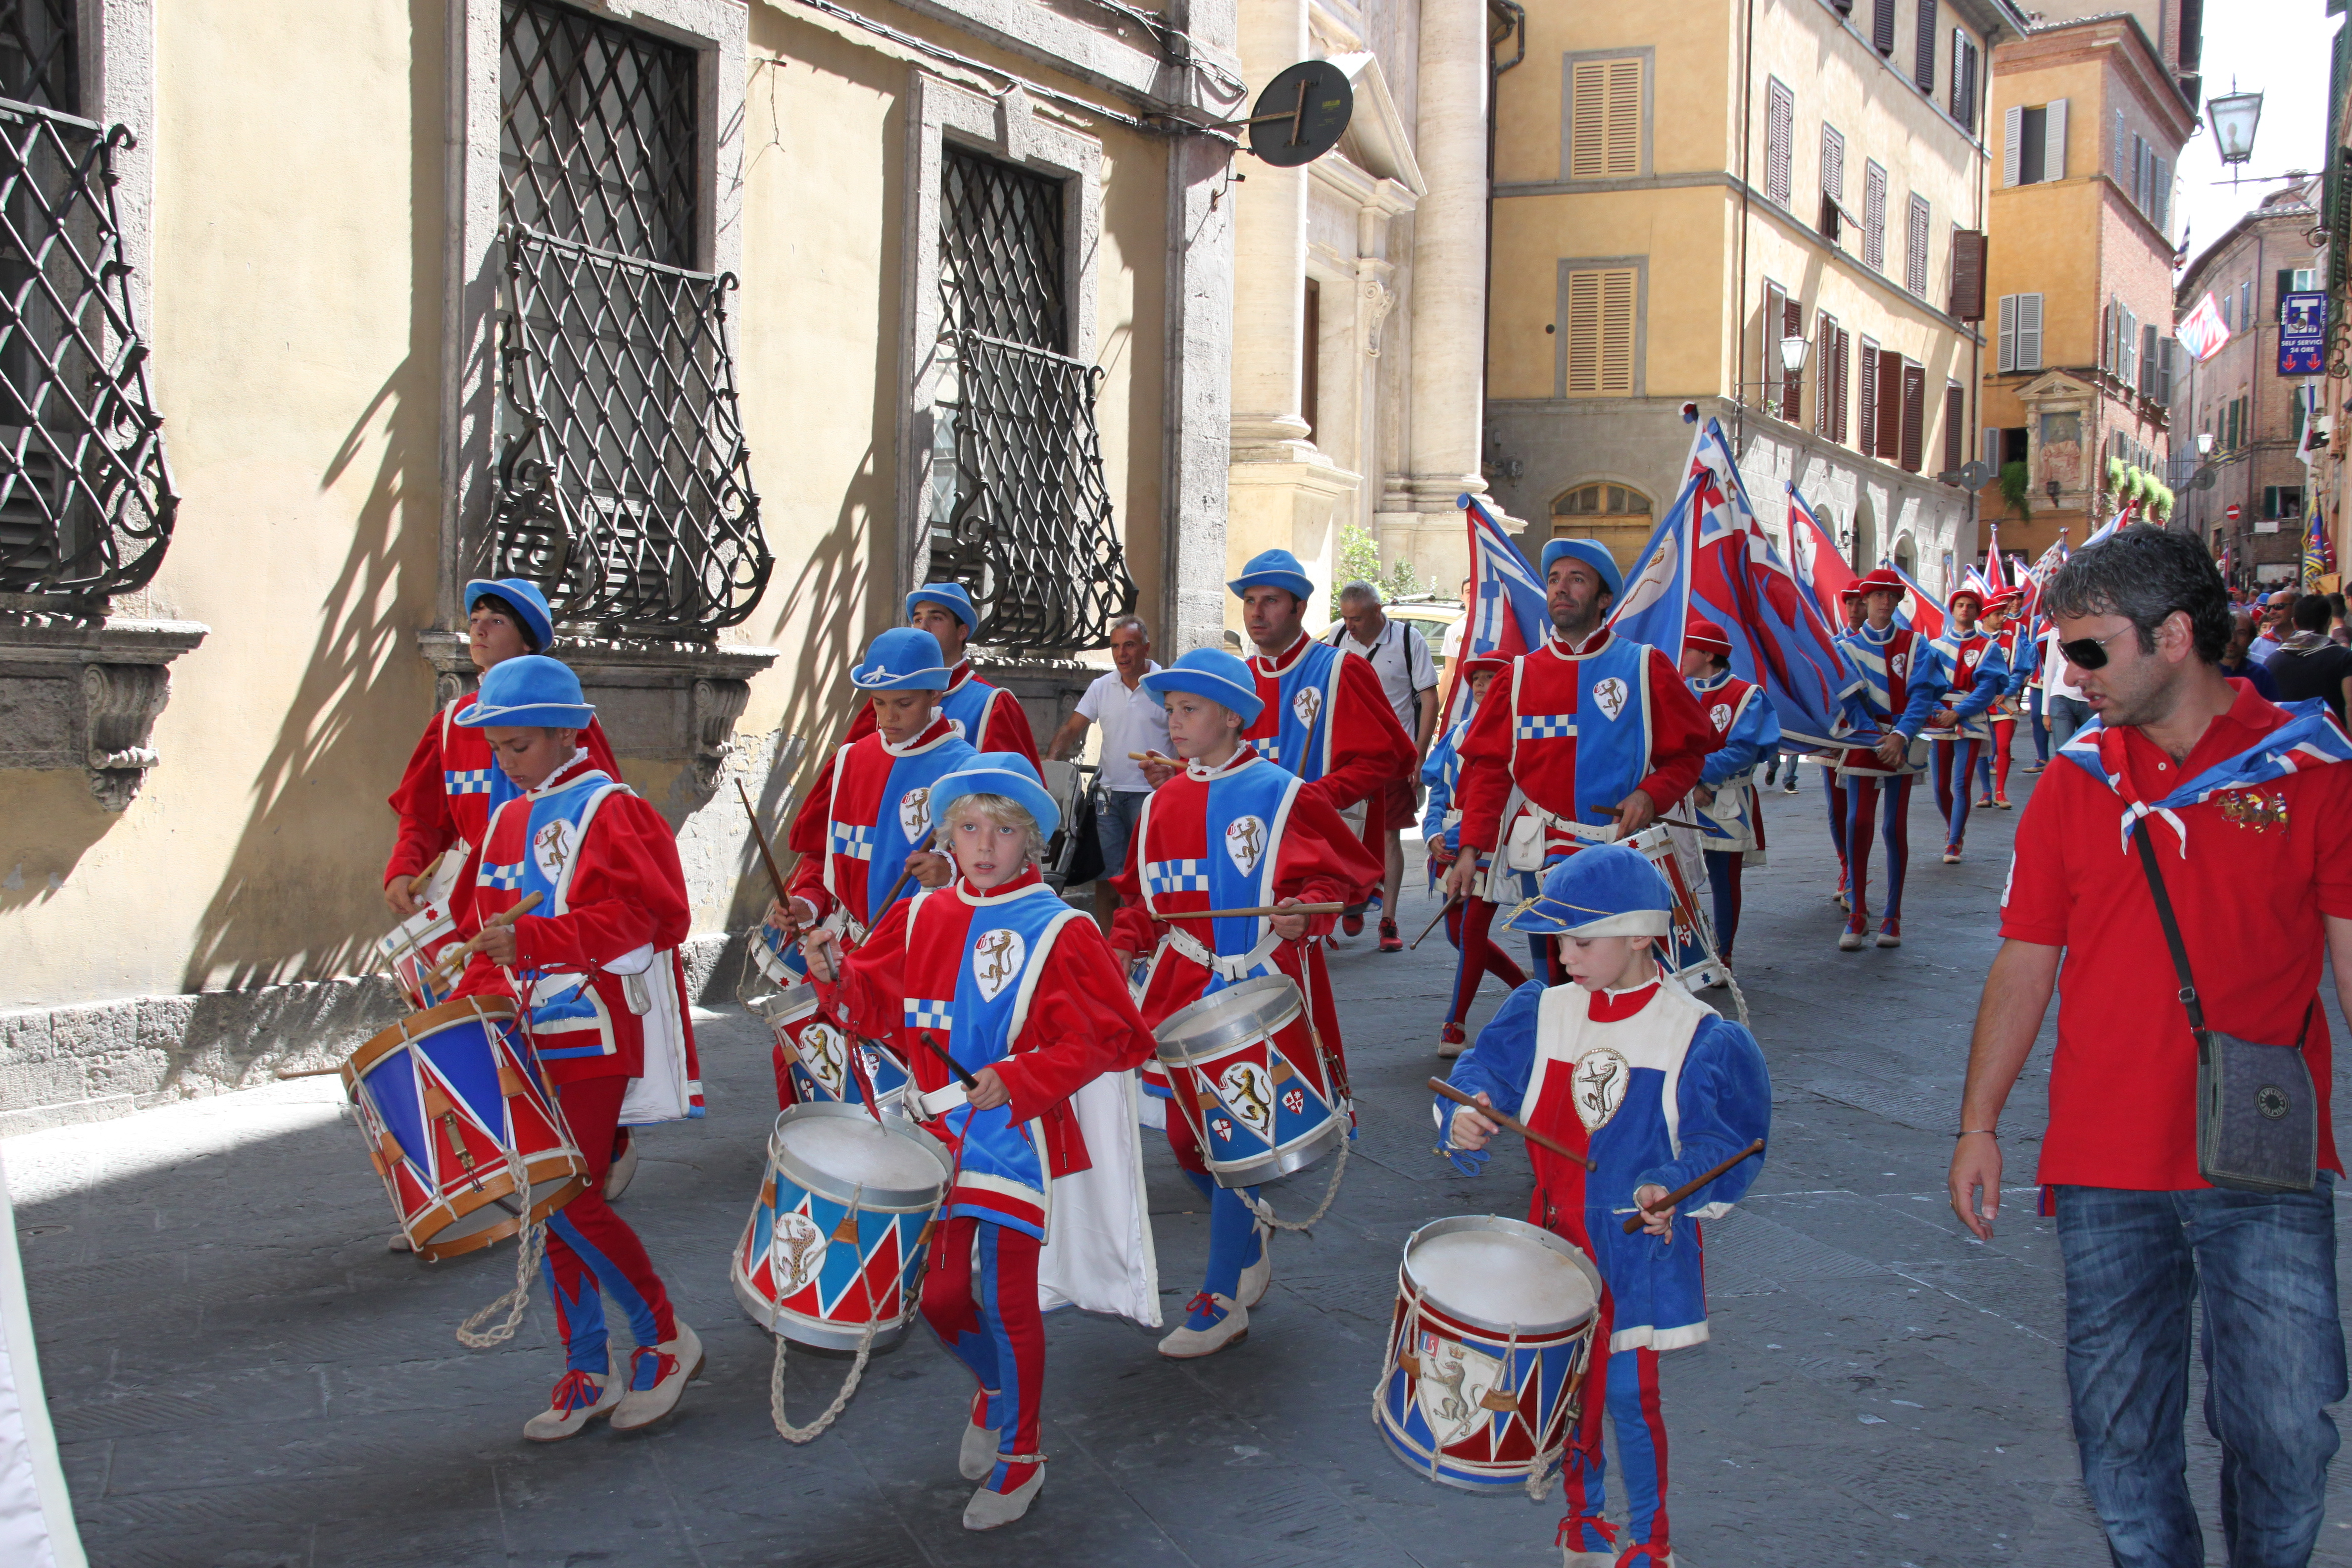 Each summer Sunday a contrada or district will parade around the city with drummers and flag bearers all in medieval costume